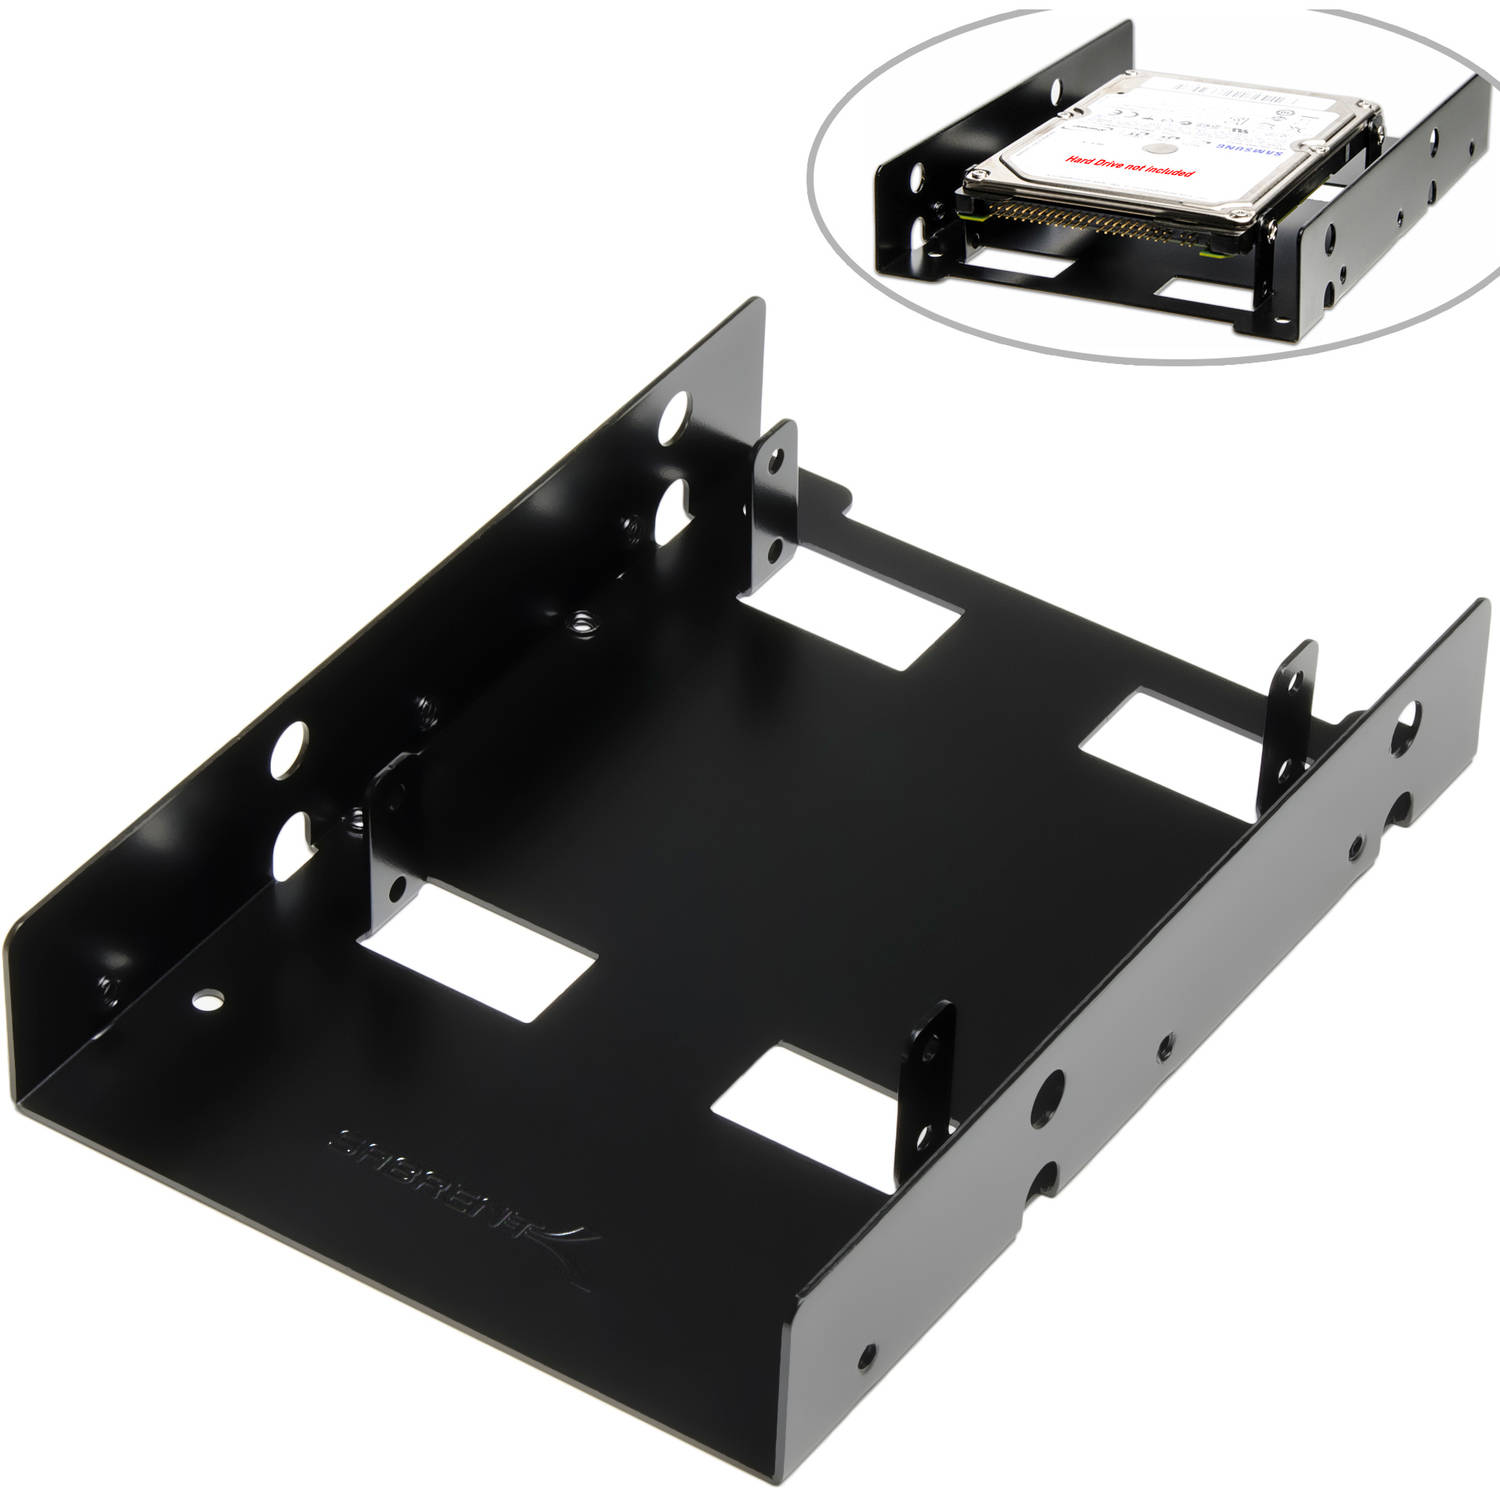 "Sabrent 2.5"" to 3.5"" Internal Hard Disk Drive Mounting Bracket Kit, BK-HDDF"